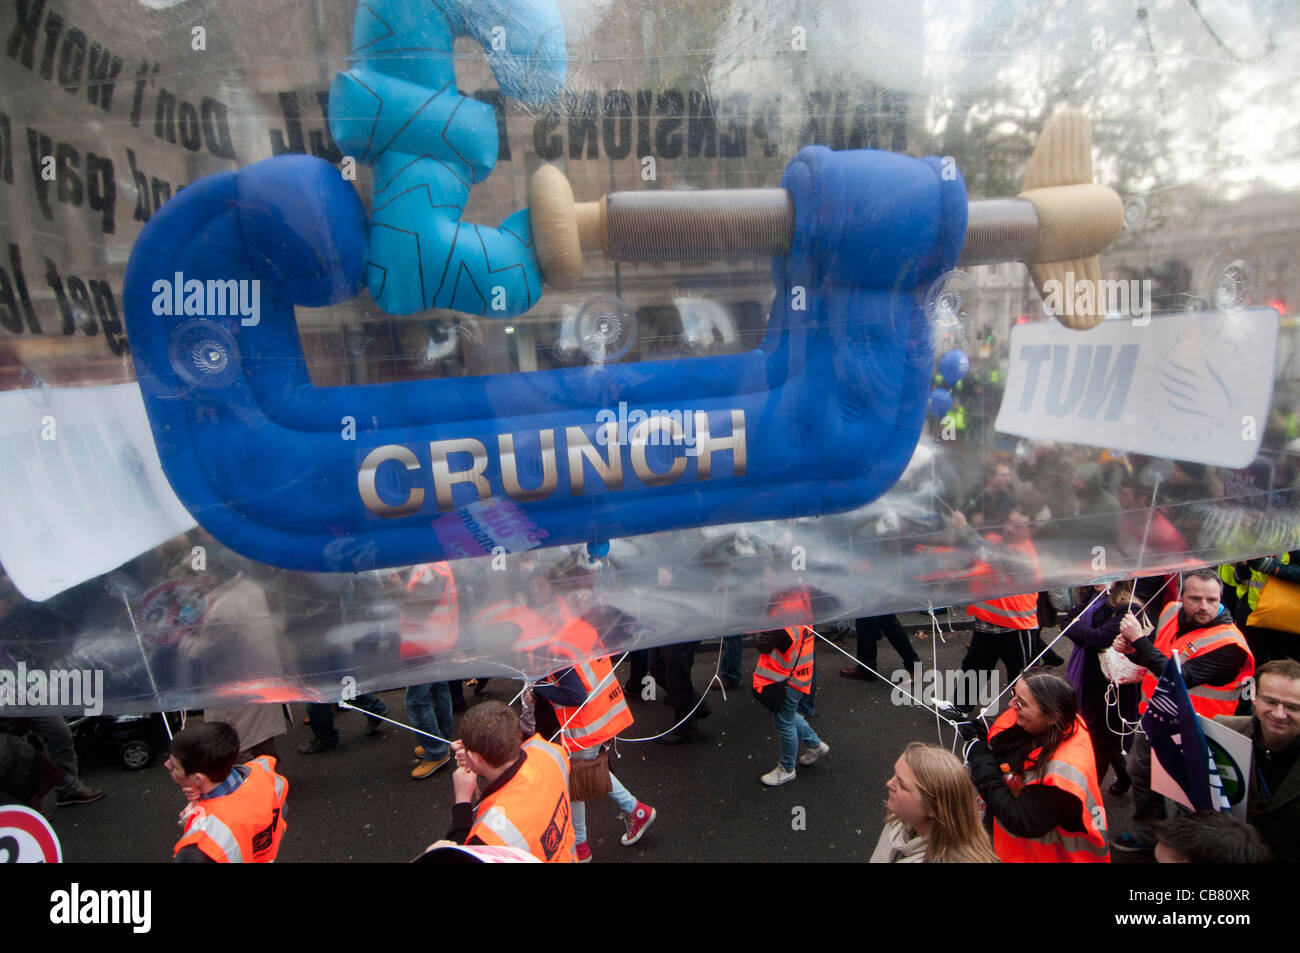 One day strike against pension cuts by public sector workers.  A giant inflatable with a £ sign being squeezed - Stock Image